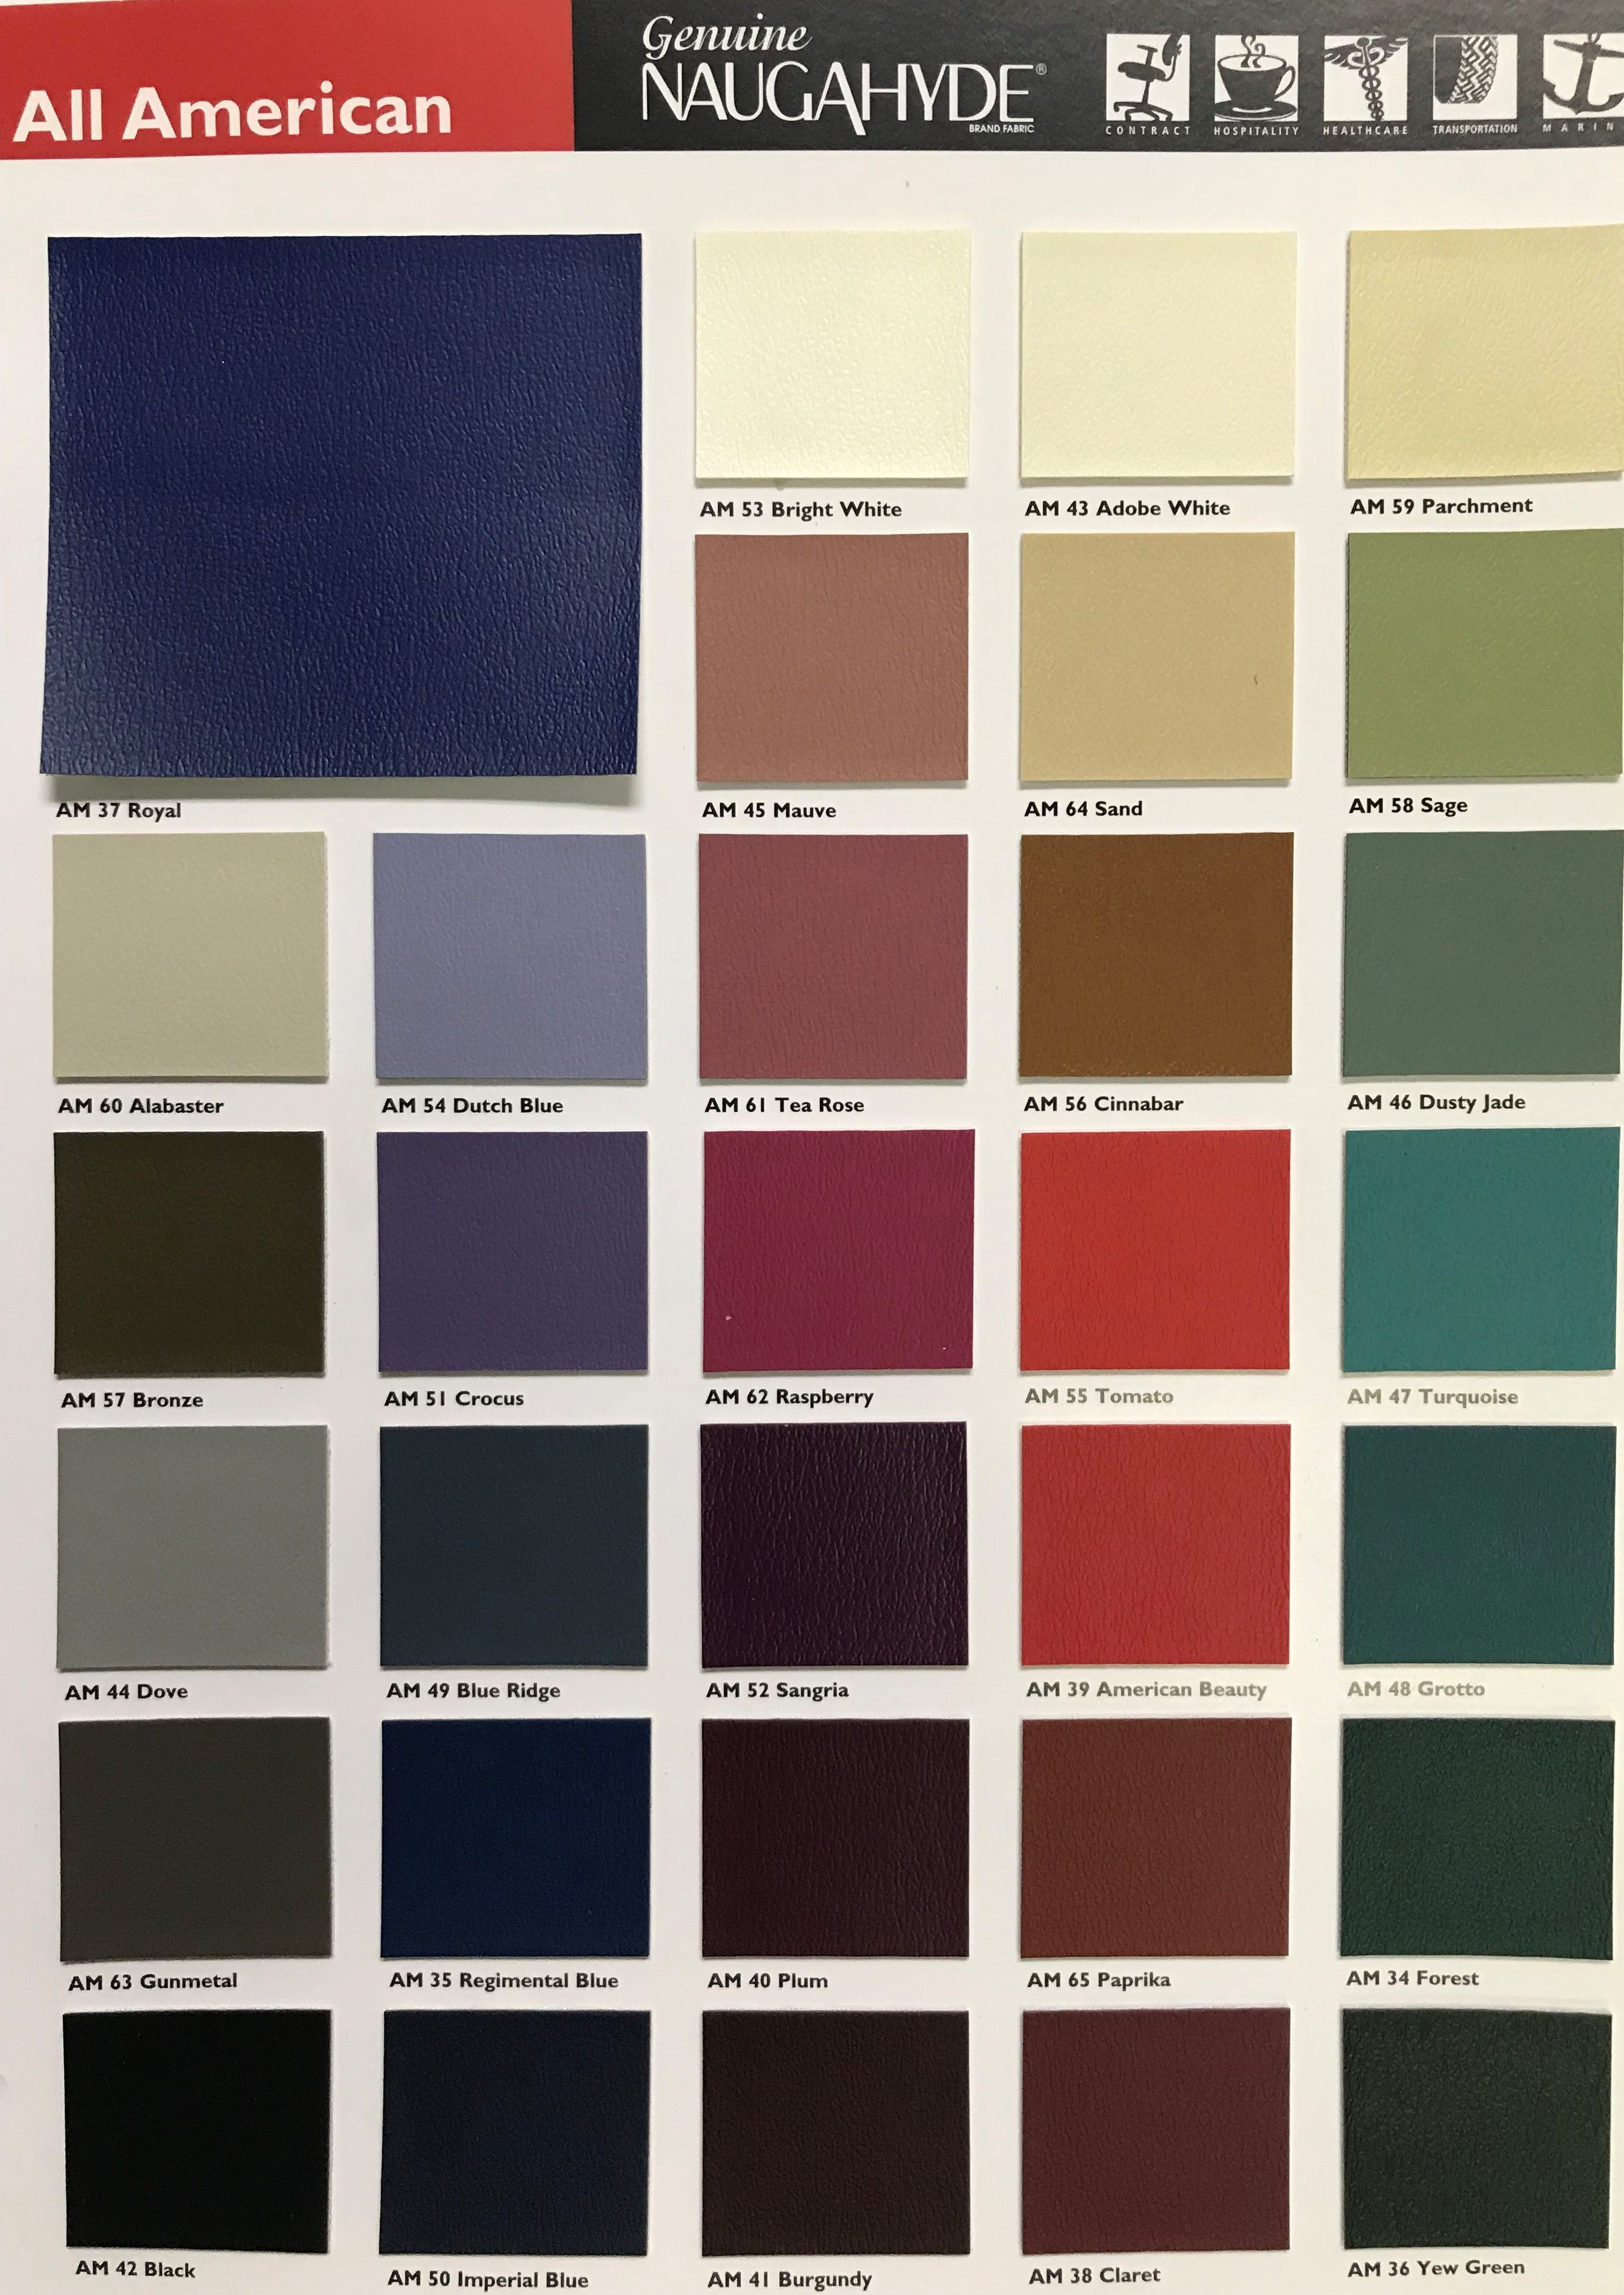 All American Naugahyde Faux Leather Upholstery Vinyl